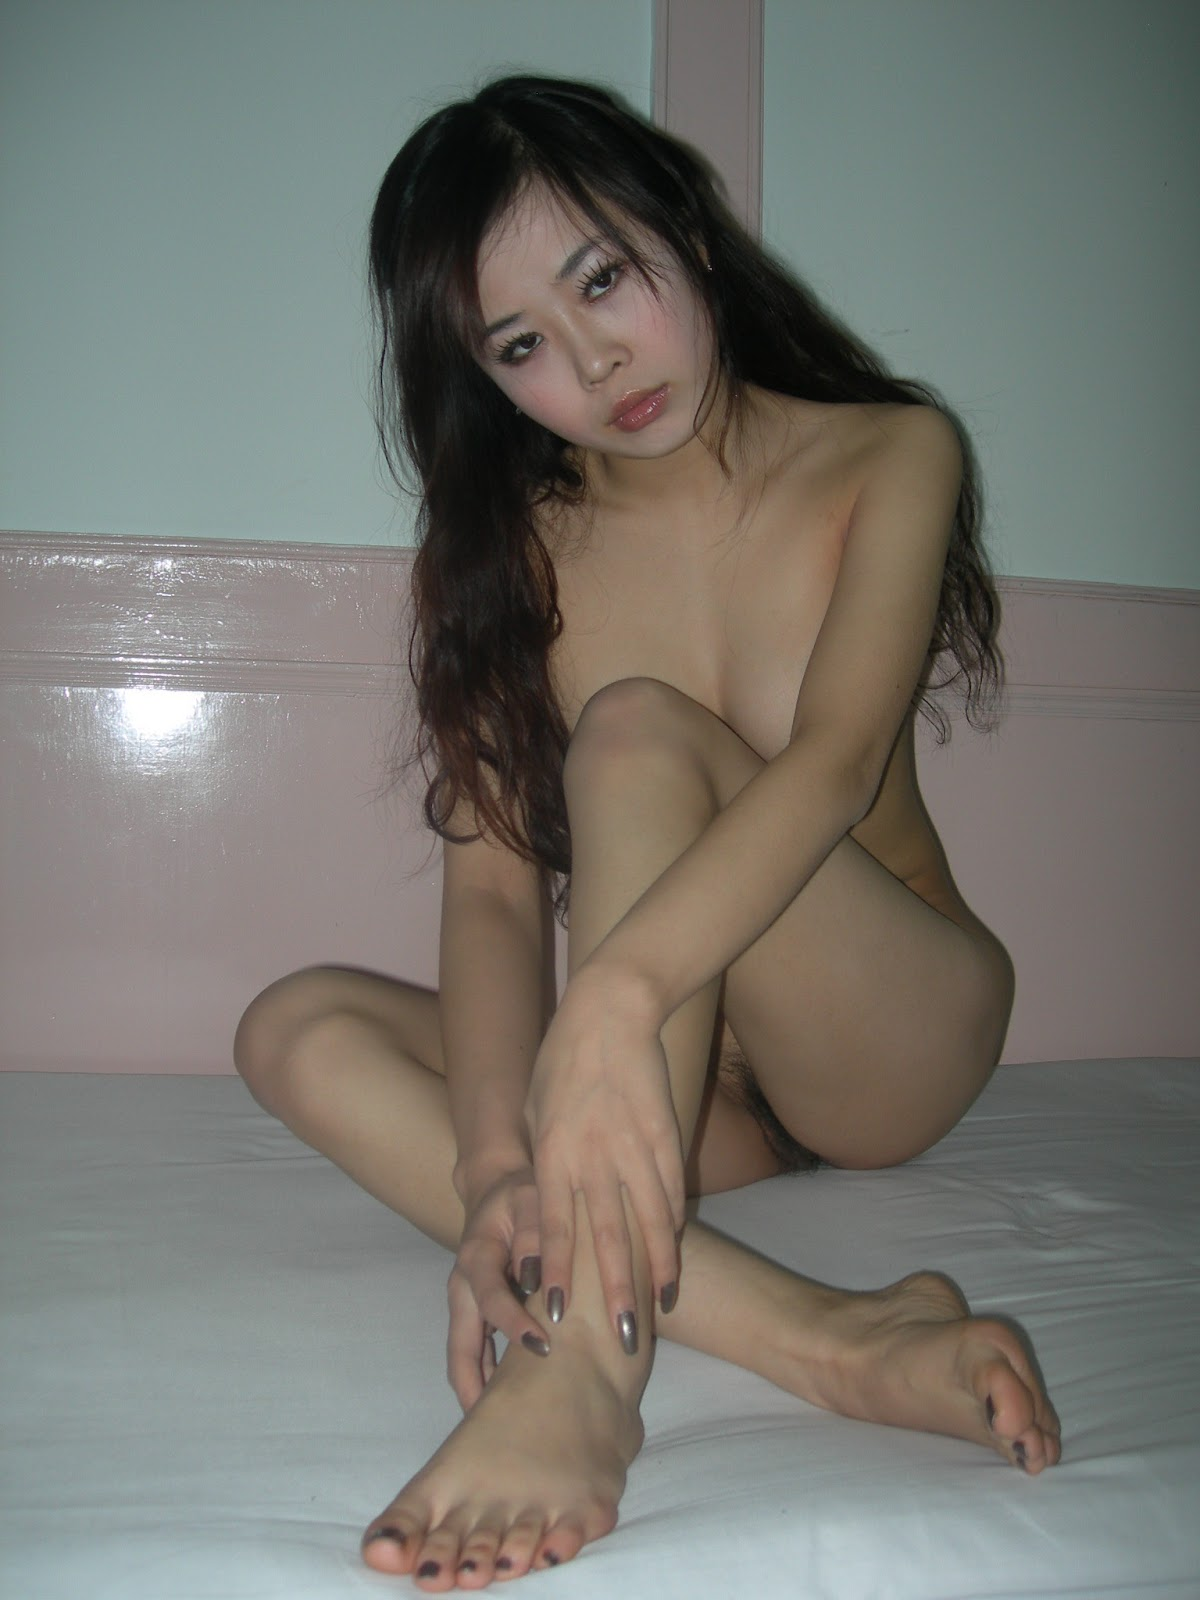 Your idea naked girls blowjob taiwan question